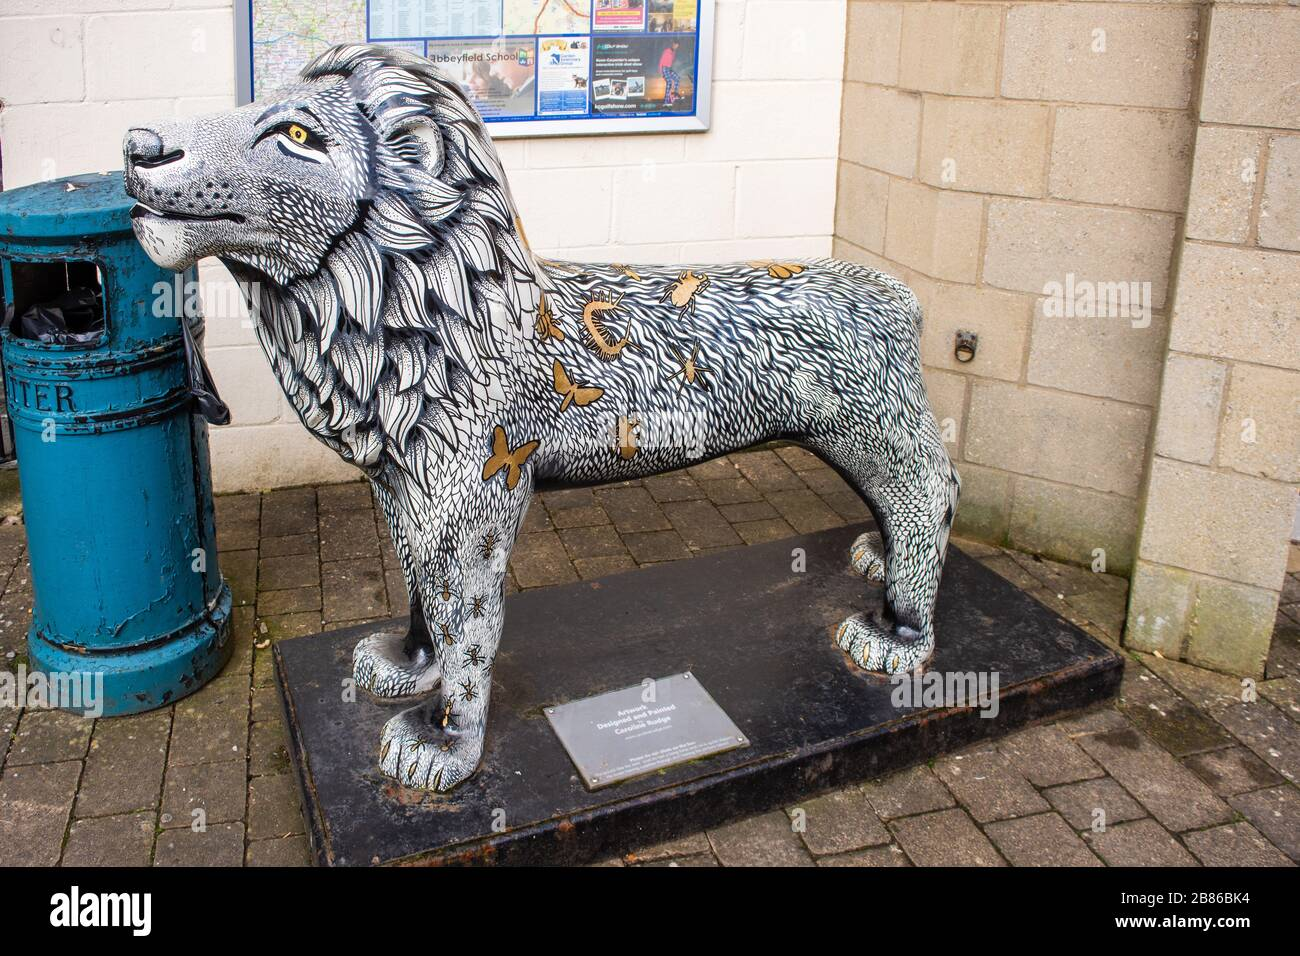 "A lion sculpture known locally as ""Lionardo"" painted  by a local artist is decorated with gold insects on a white and black background in the town of Stock Photo"